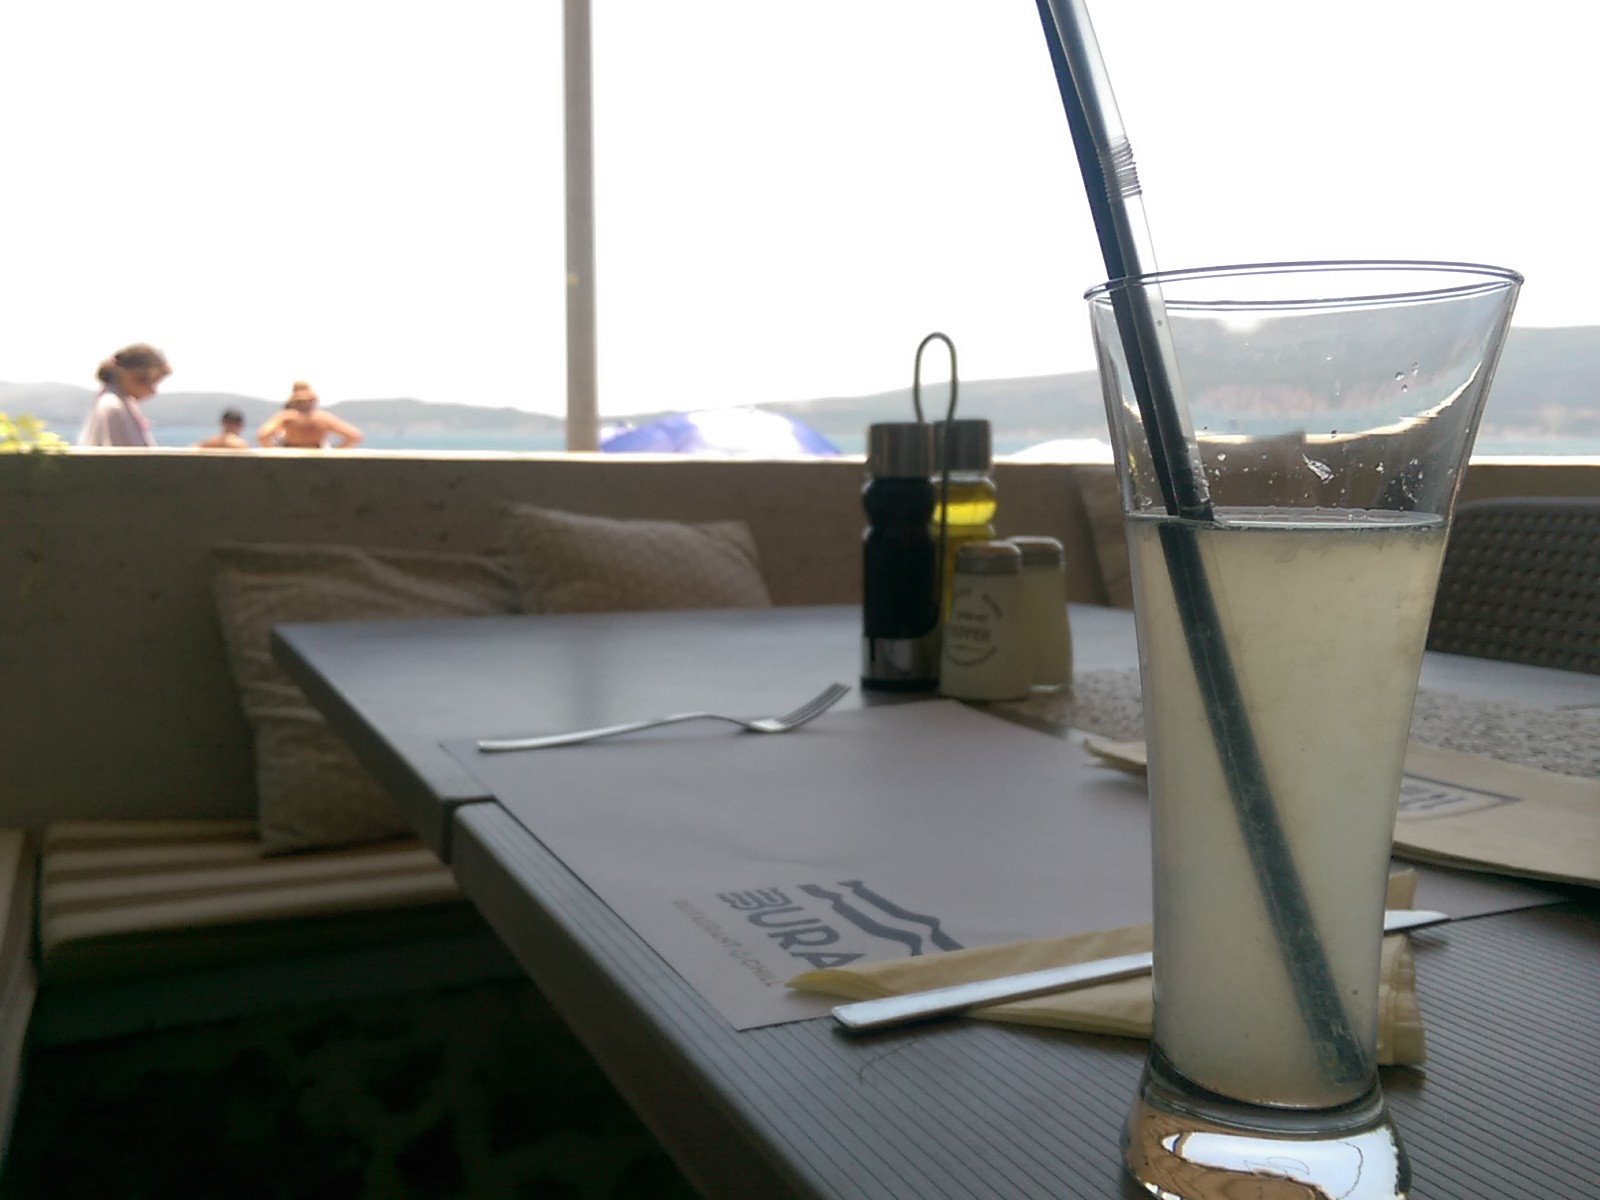 A tall glass of lemonade in the foreground on a table with cafe benches